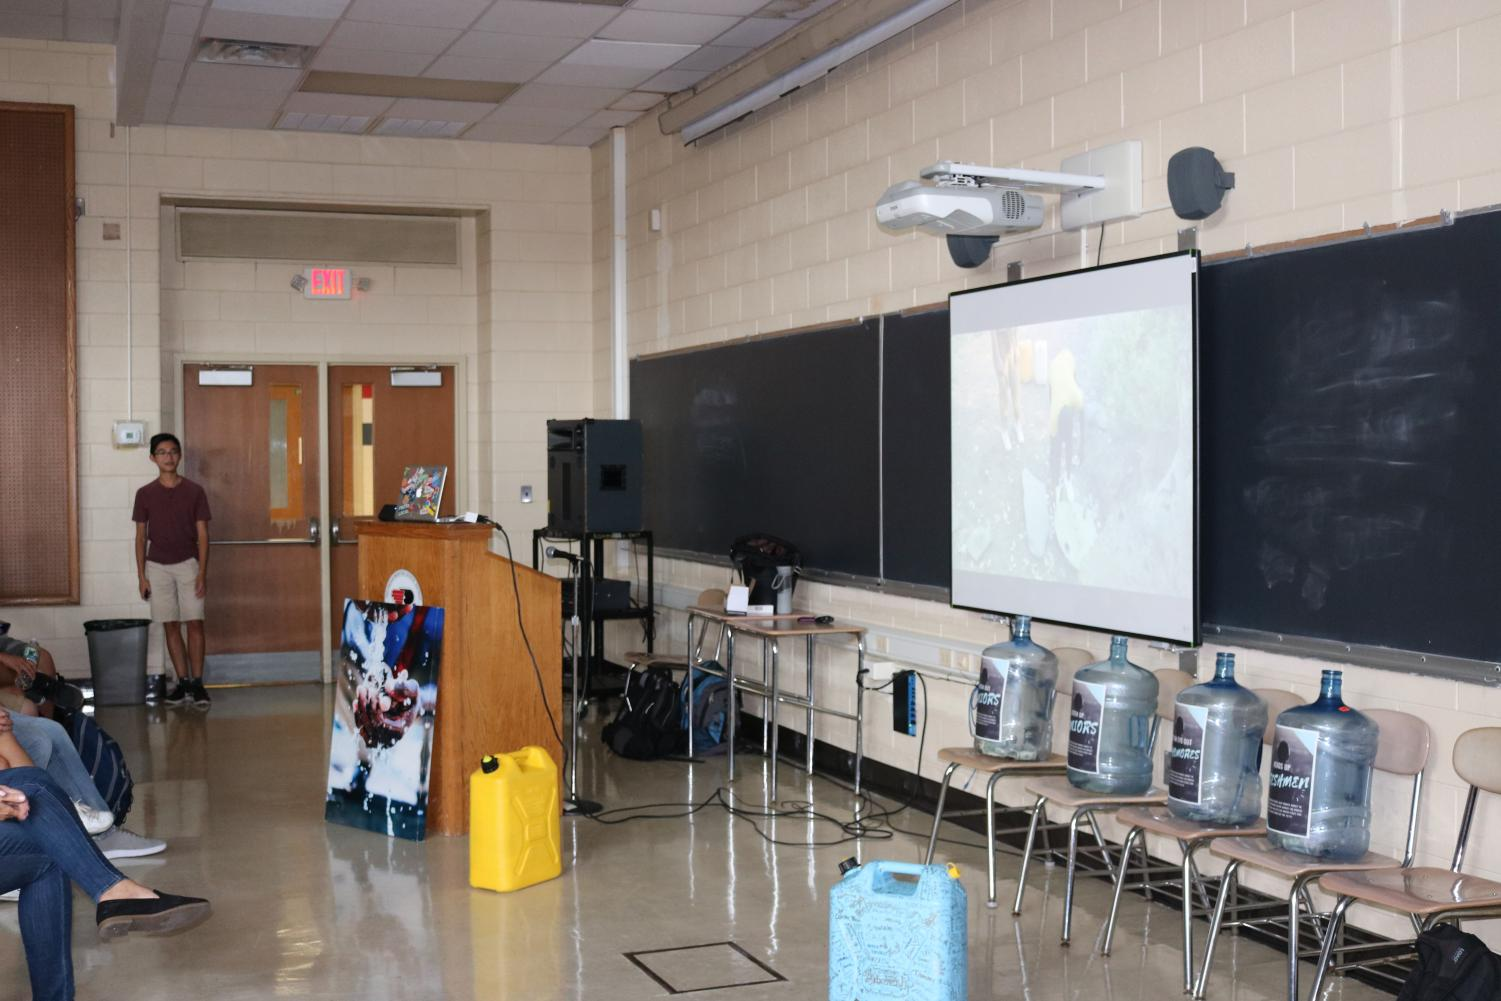 The Key Club hosted an event for